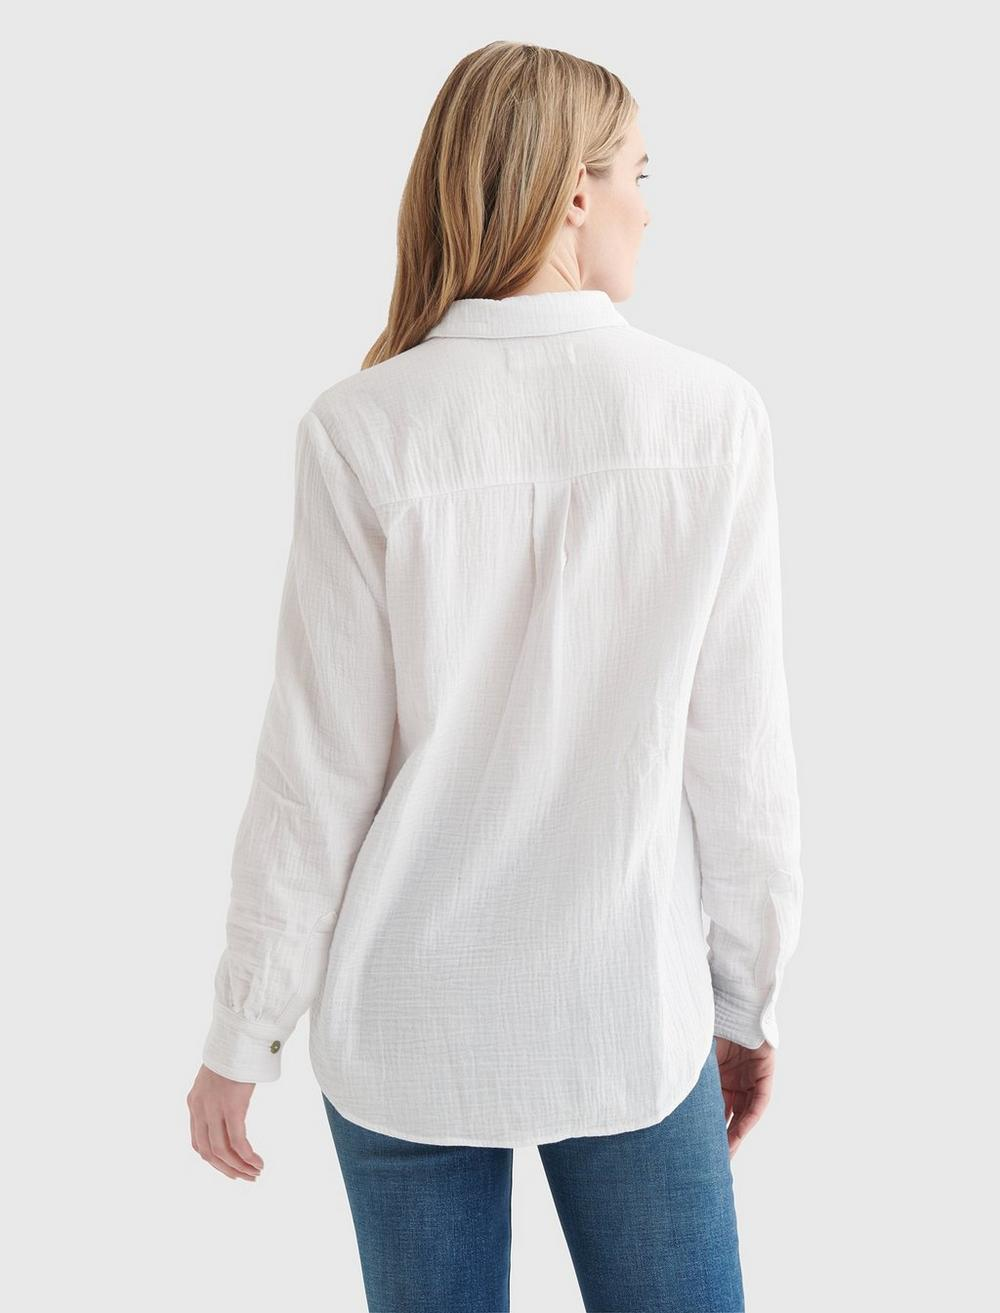 RELAXED-FIT POCKET WOVEN SHIRT, image 6